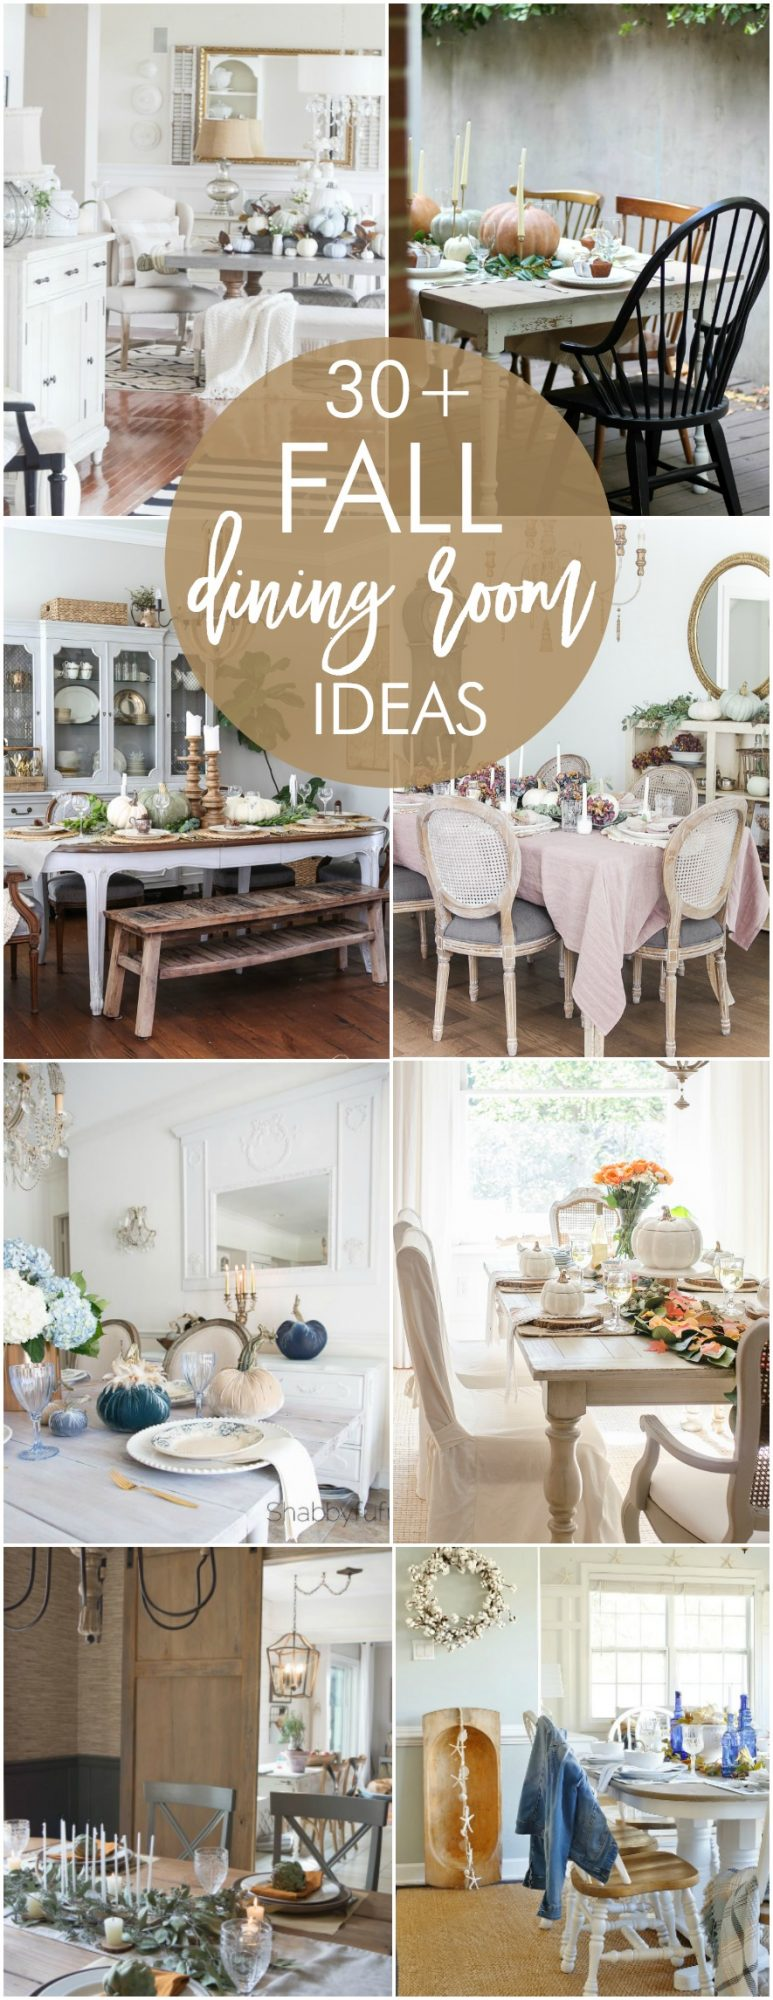 30+ Fall Dining Room and Tablescape Ideas